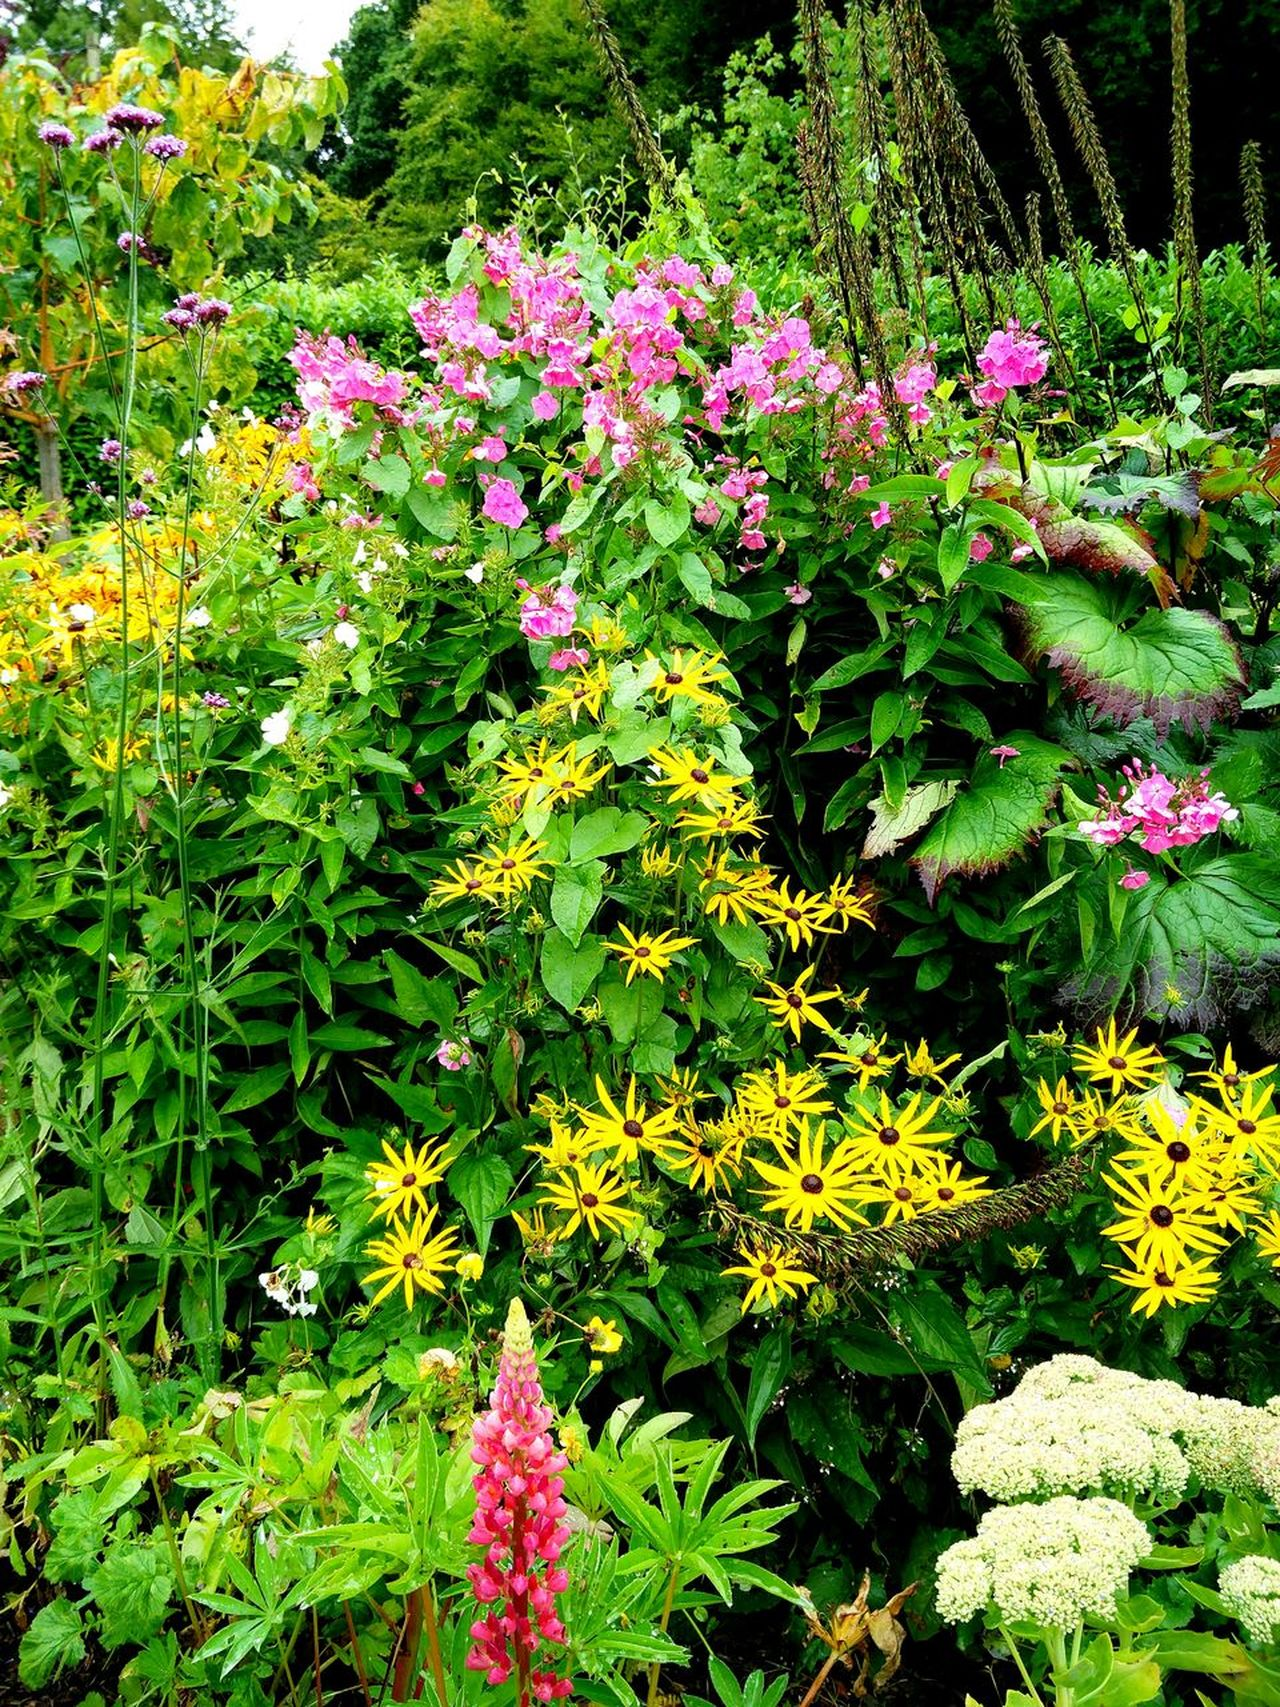 Garden EyeEmNewHere Leafs 🍃 Wintertime Beauty In Nature Flower Head Blooming Plant Outdoors Freshness Green Leaves Plants 🌱 Leaves🌿 Foliage, Vegetation, Plants, Green, Leaves, Leafage, Undergrowth, Underbrush, Plant Life, Flora Green Green Green!  Formal Garden Garden Photography